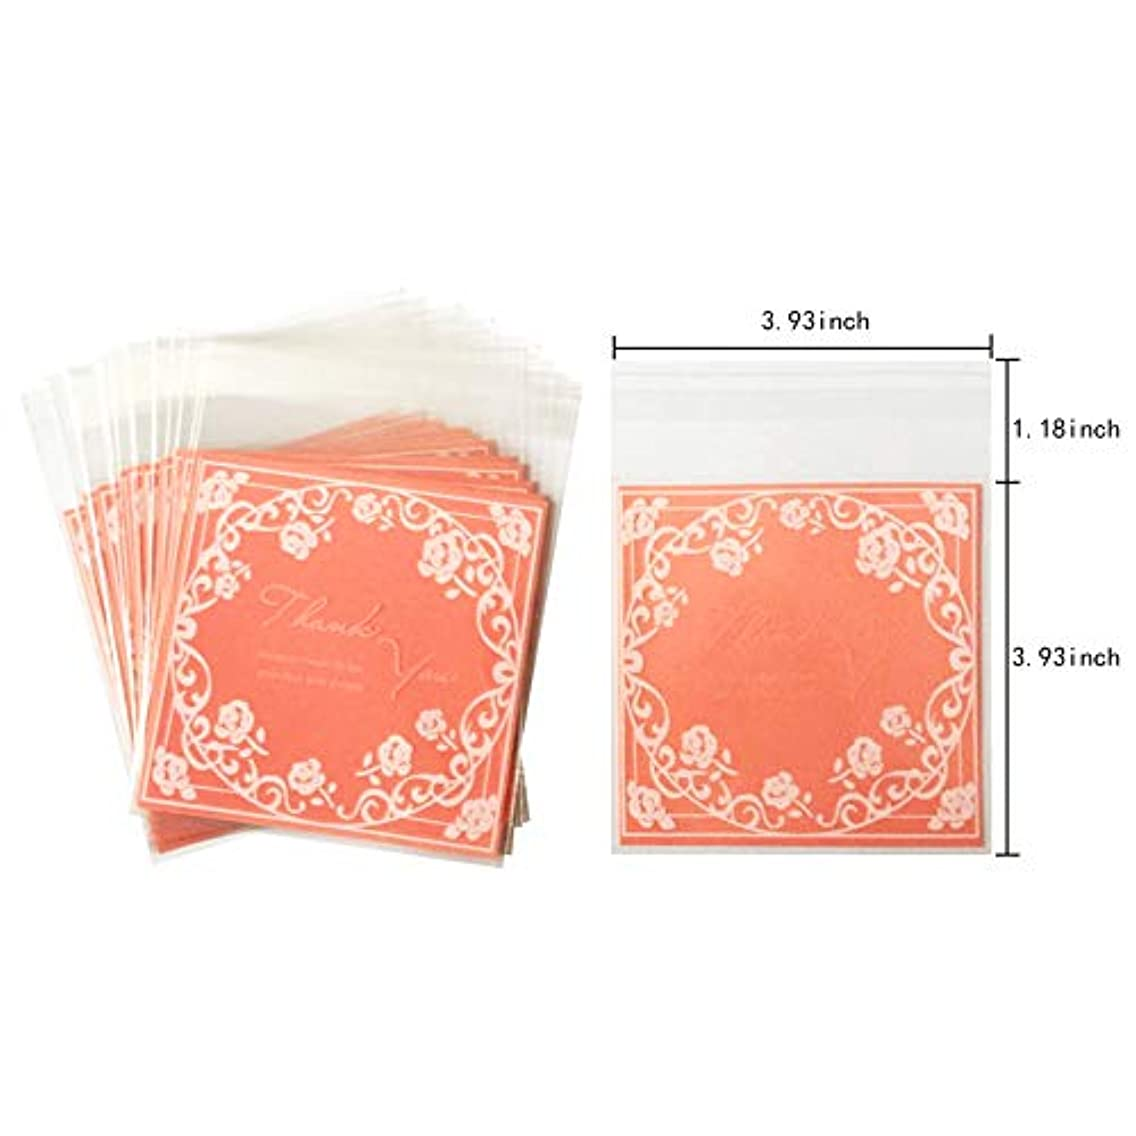 Pink Rose Plastic Pack Candy Cookie Bags Self Adhesive Bags 200 Pcs(3.93x3.93+1.18 Inch)